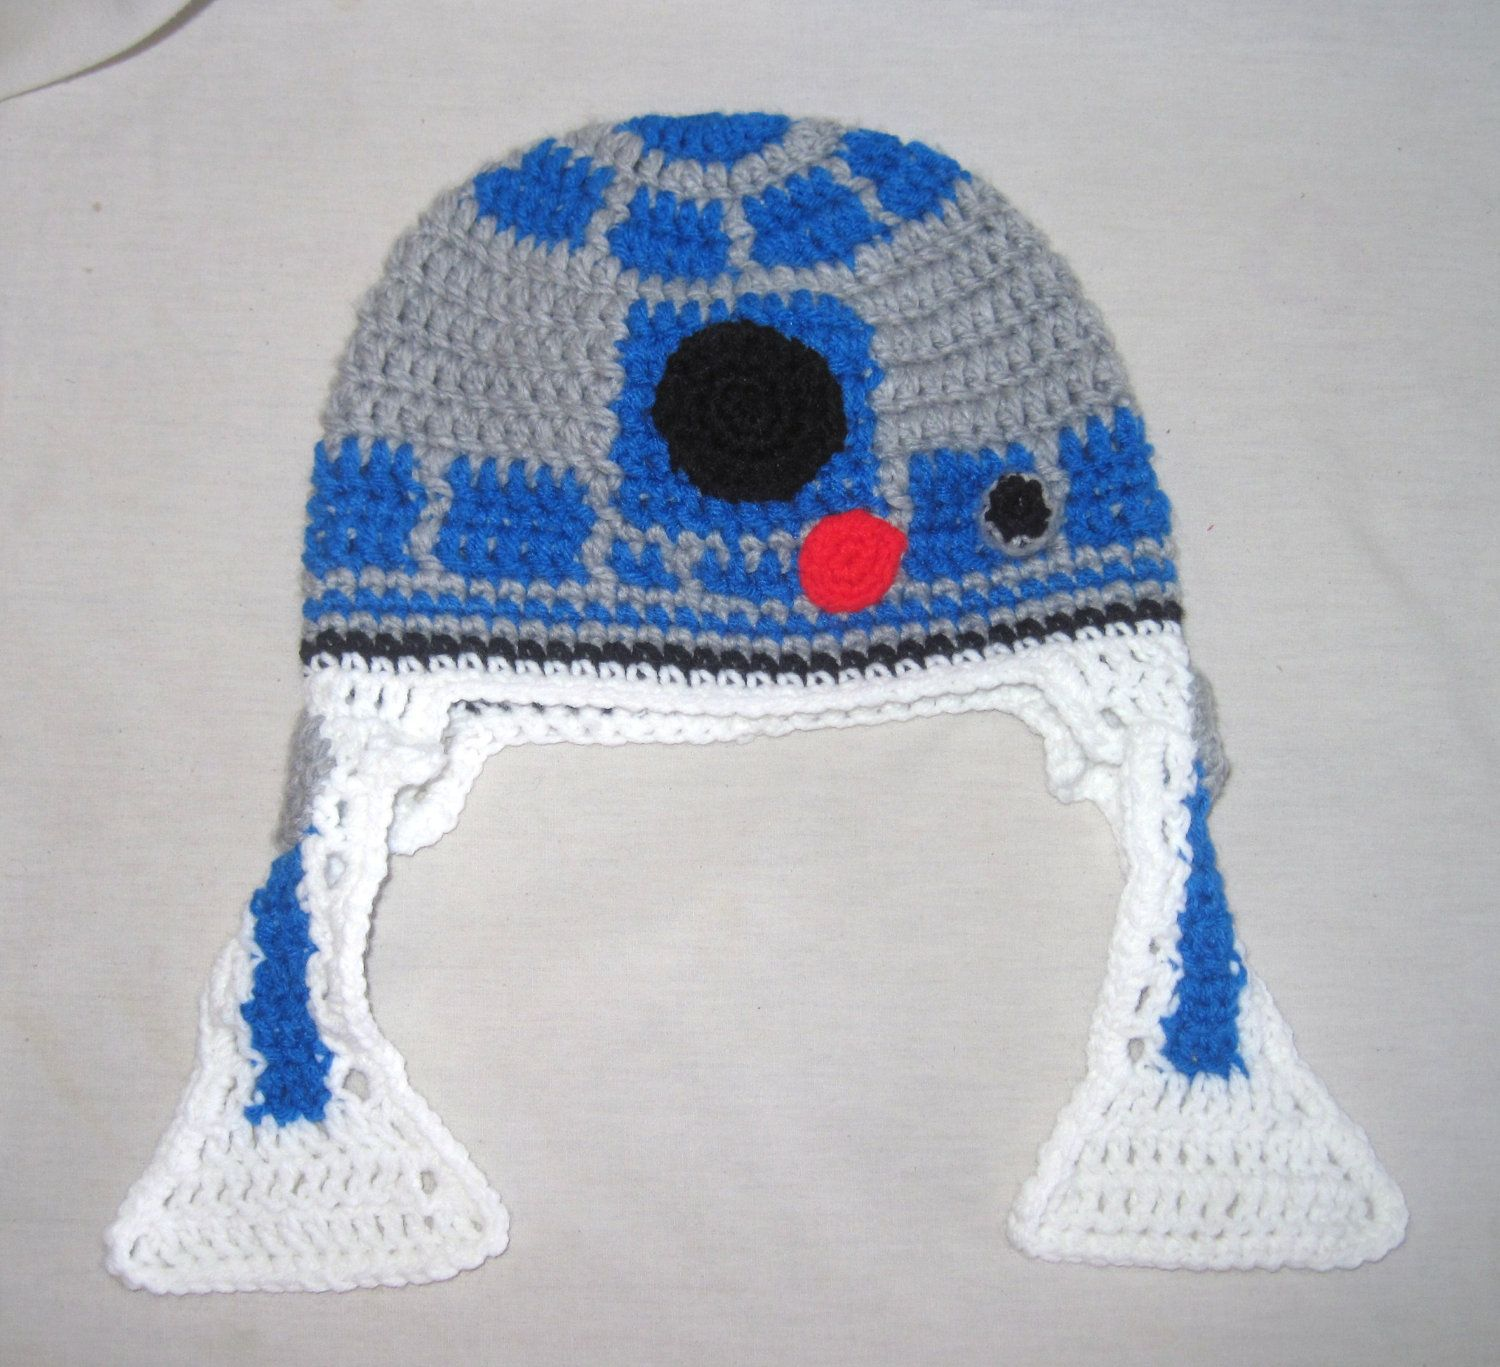 r2d2 crochet hat - Google Search | The stuff i will never crochet ...